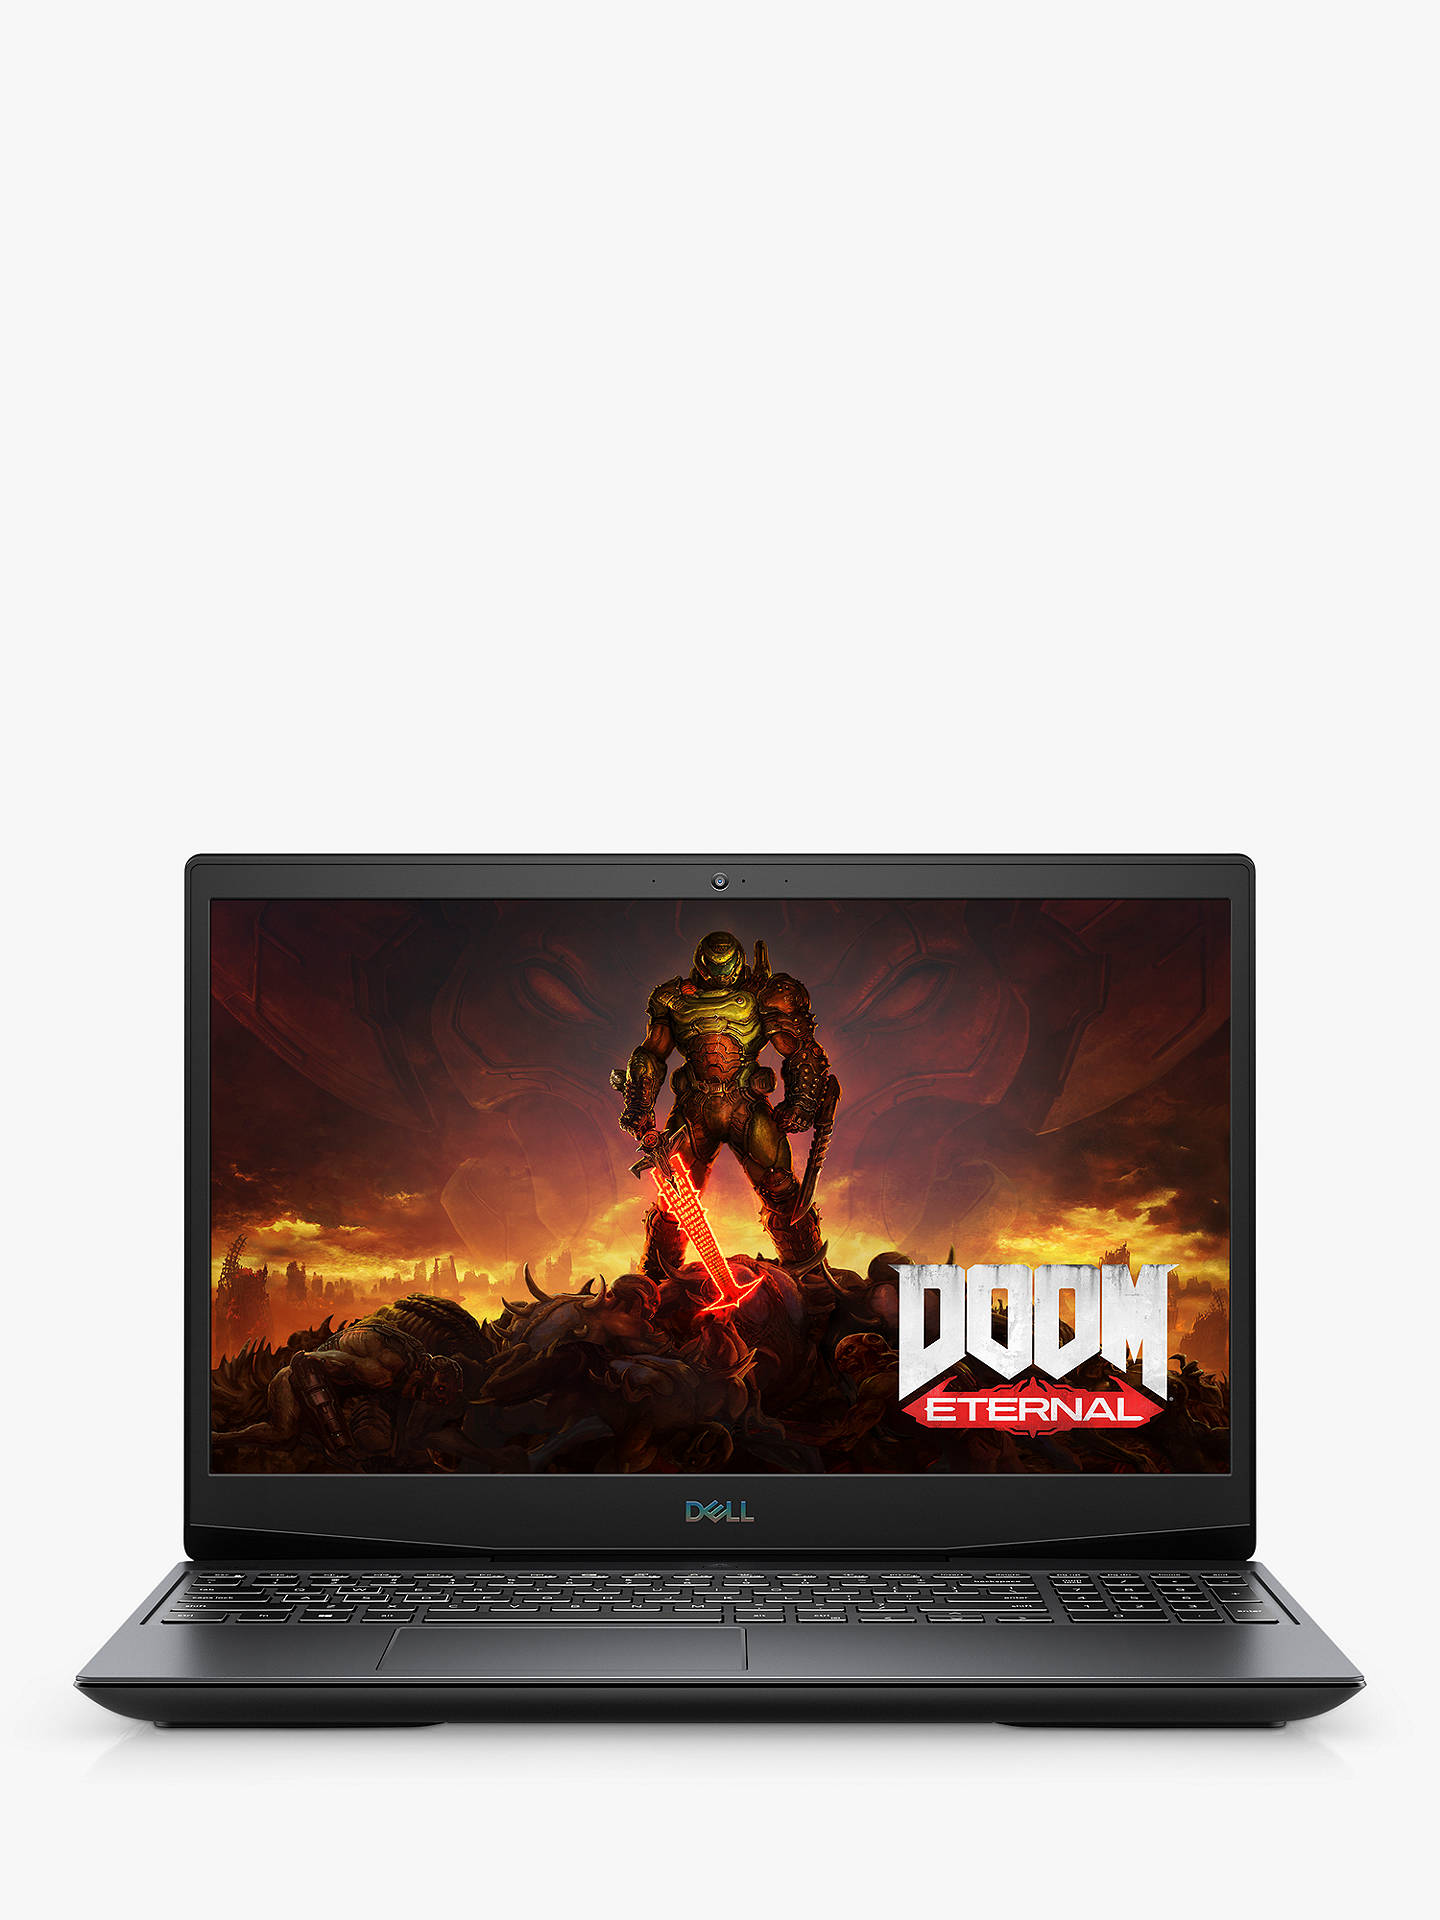 Dell G3 15 3500 Laptop Intel Core I5 Processor 8gb Ram 512gb Ssd 15 6 Full Hd Black At John Lewis Partners